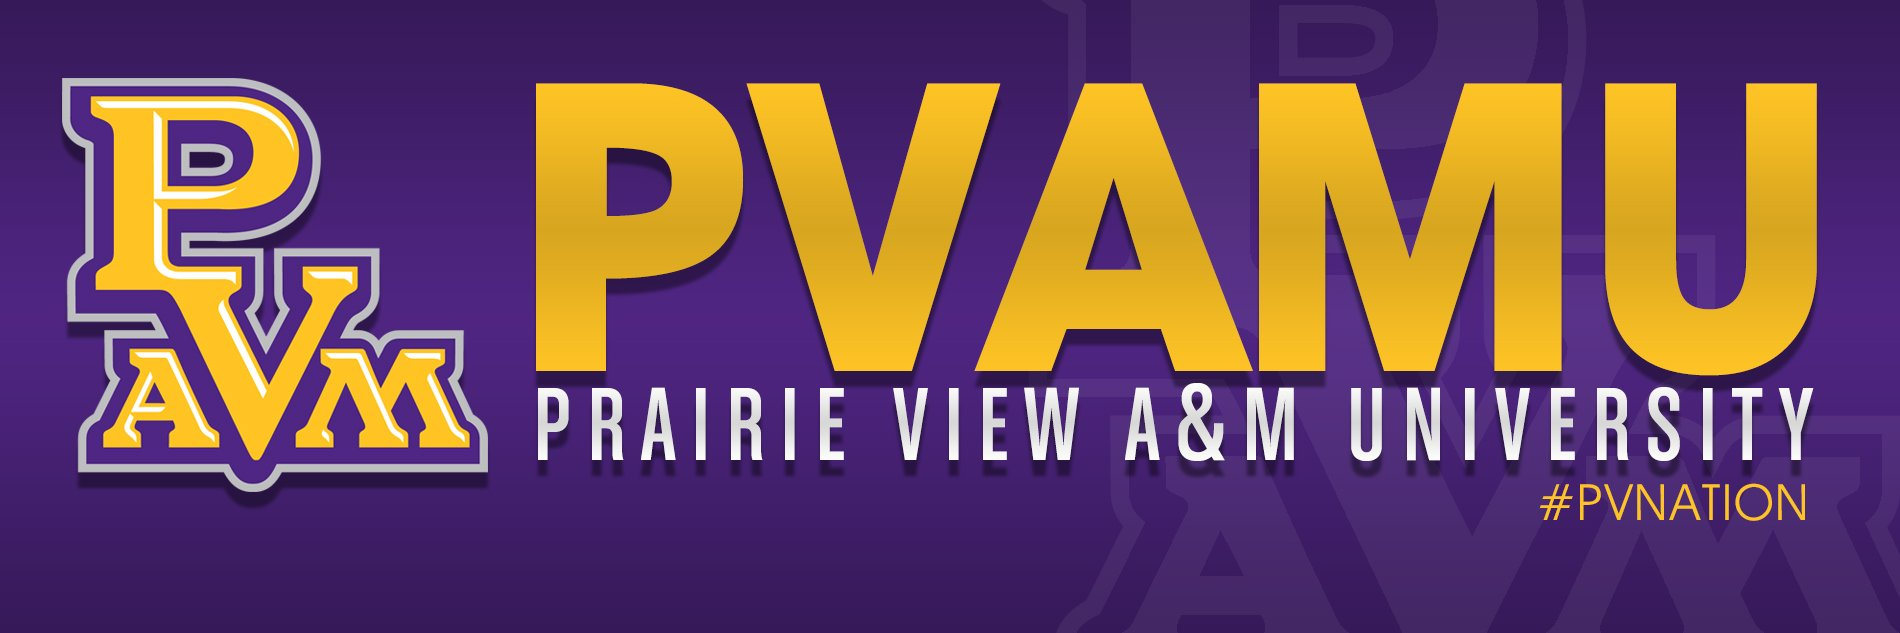 Prairie View A&M University's official Twitter account